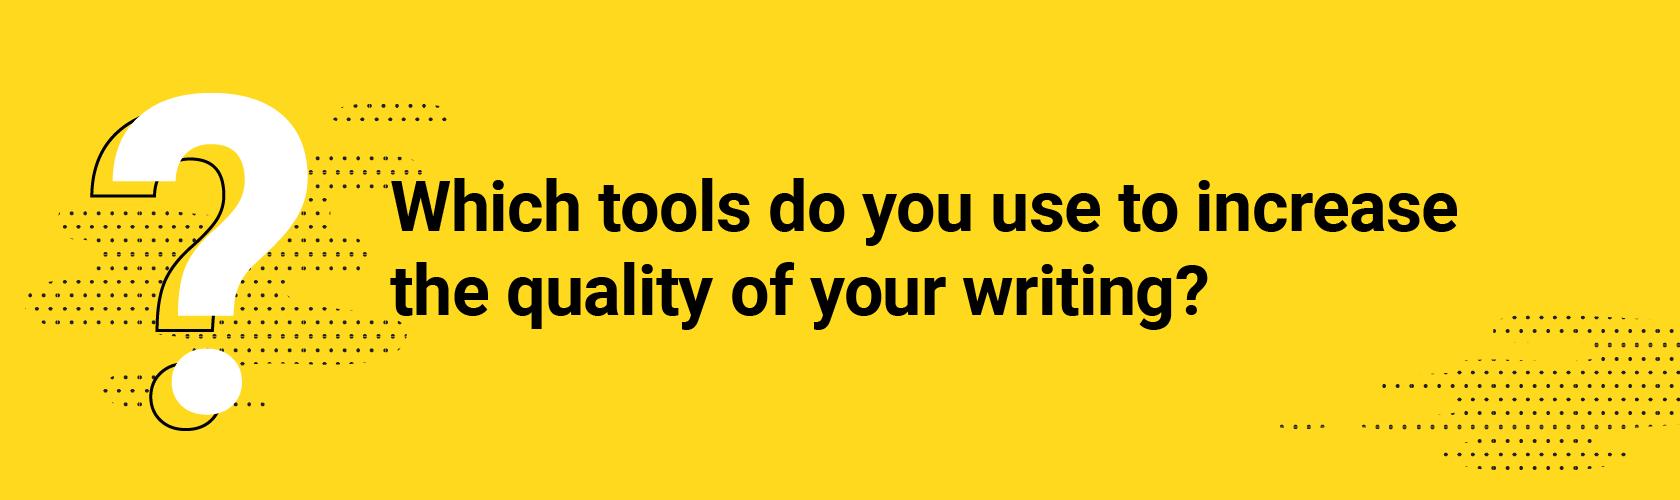 Which tools do you use to increase the quality of your writing?